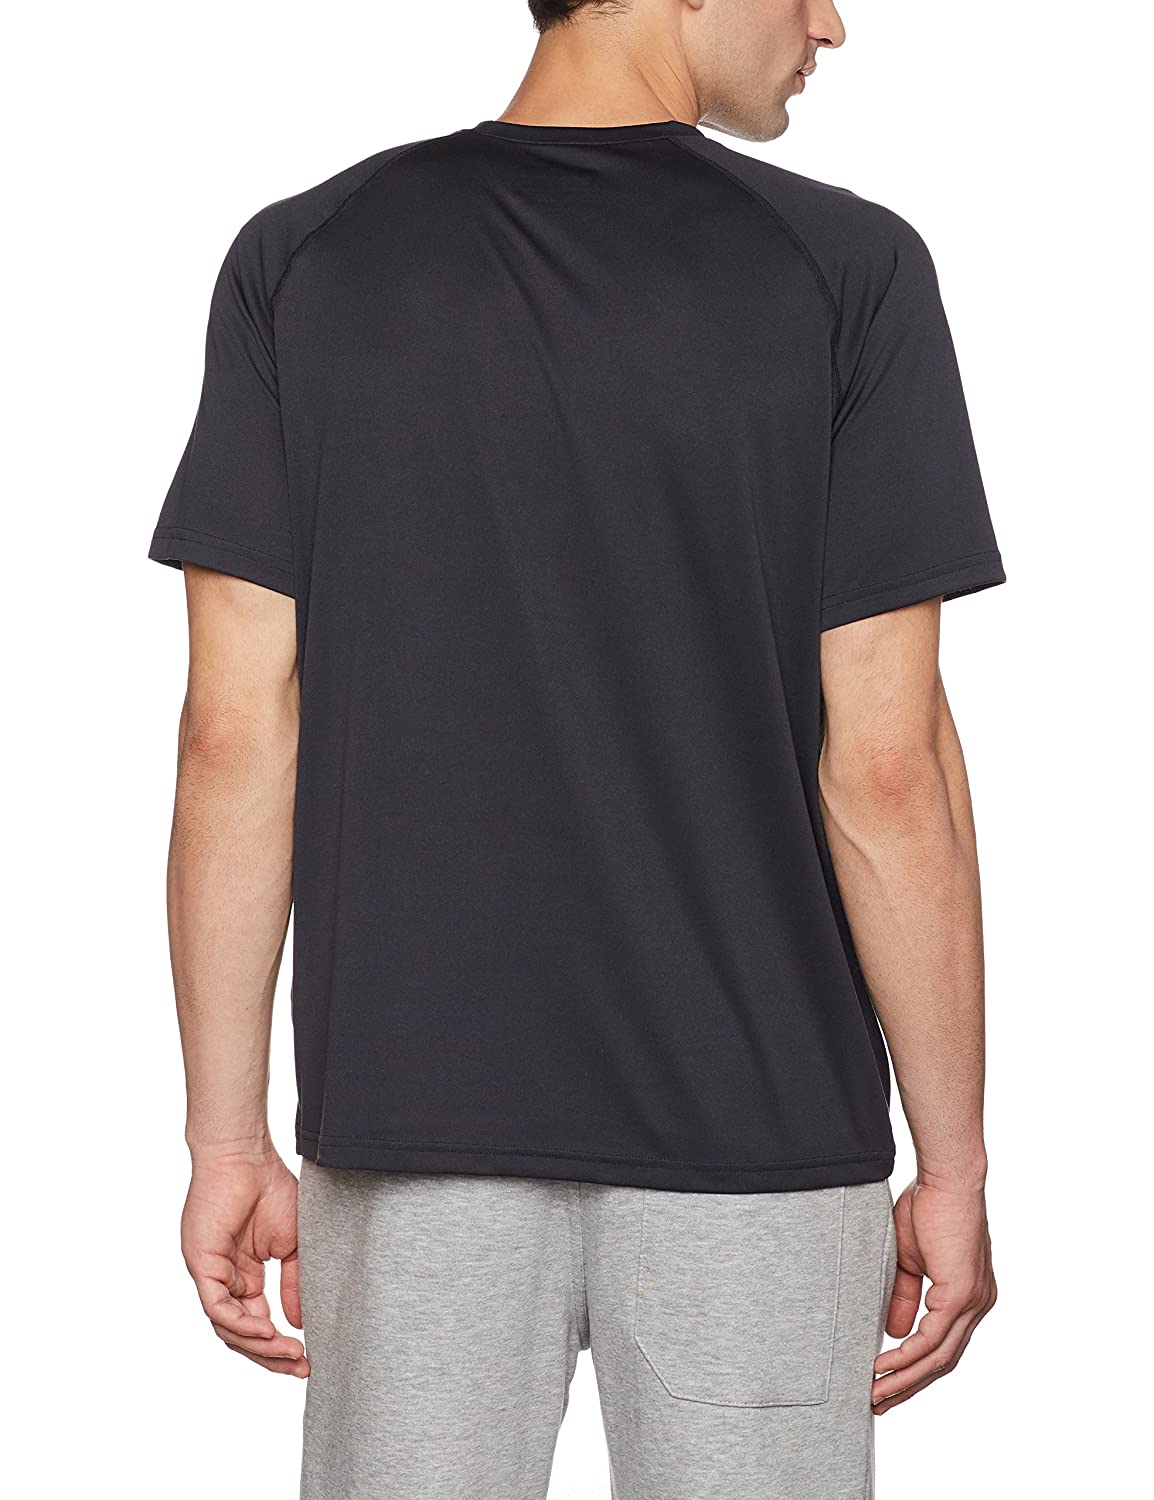 Gym Clothes Featuring Patented Anti-Odour Technology Under Armour Tactical Tech Sports T-Shirt Breathable /& Fast-Drying Mens T-Shirt